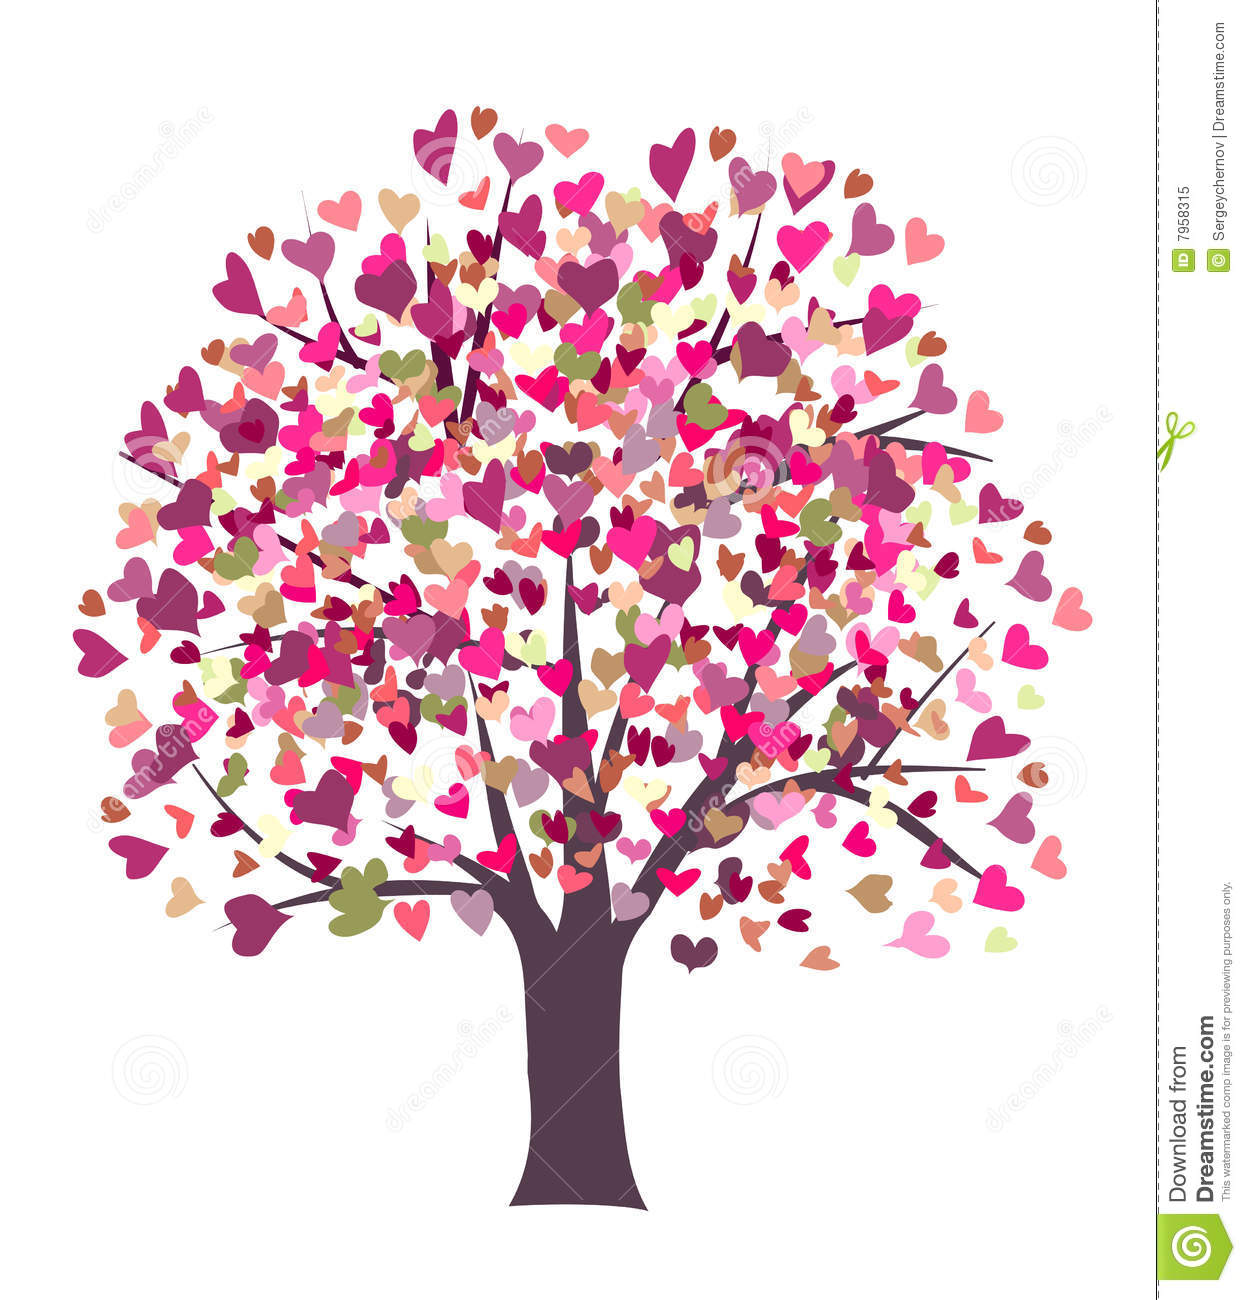 Love Symbol Tree Stock Vector Illustration Of Modern 7958315